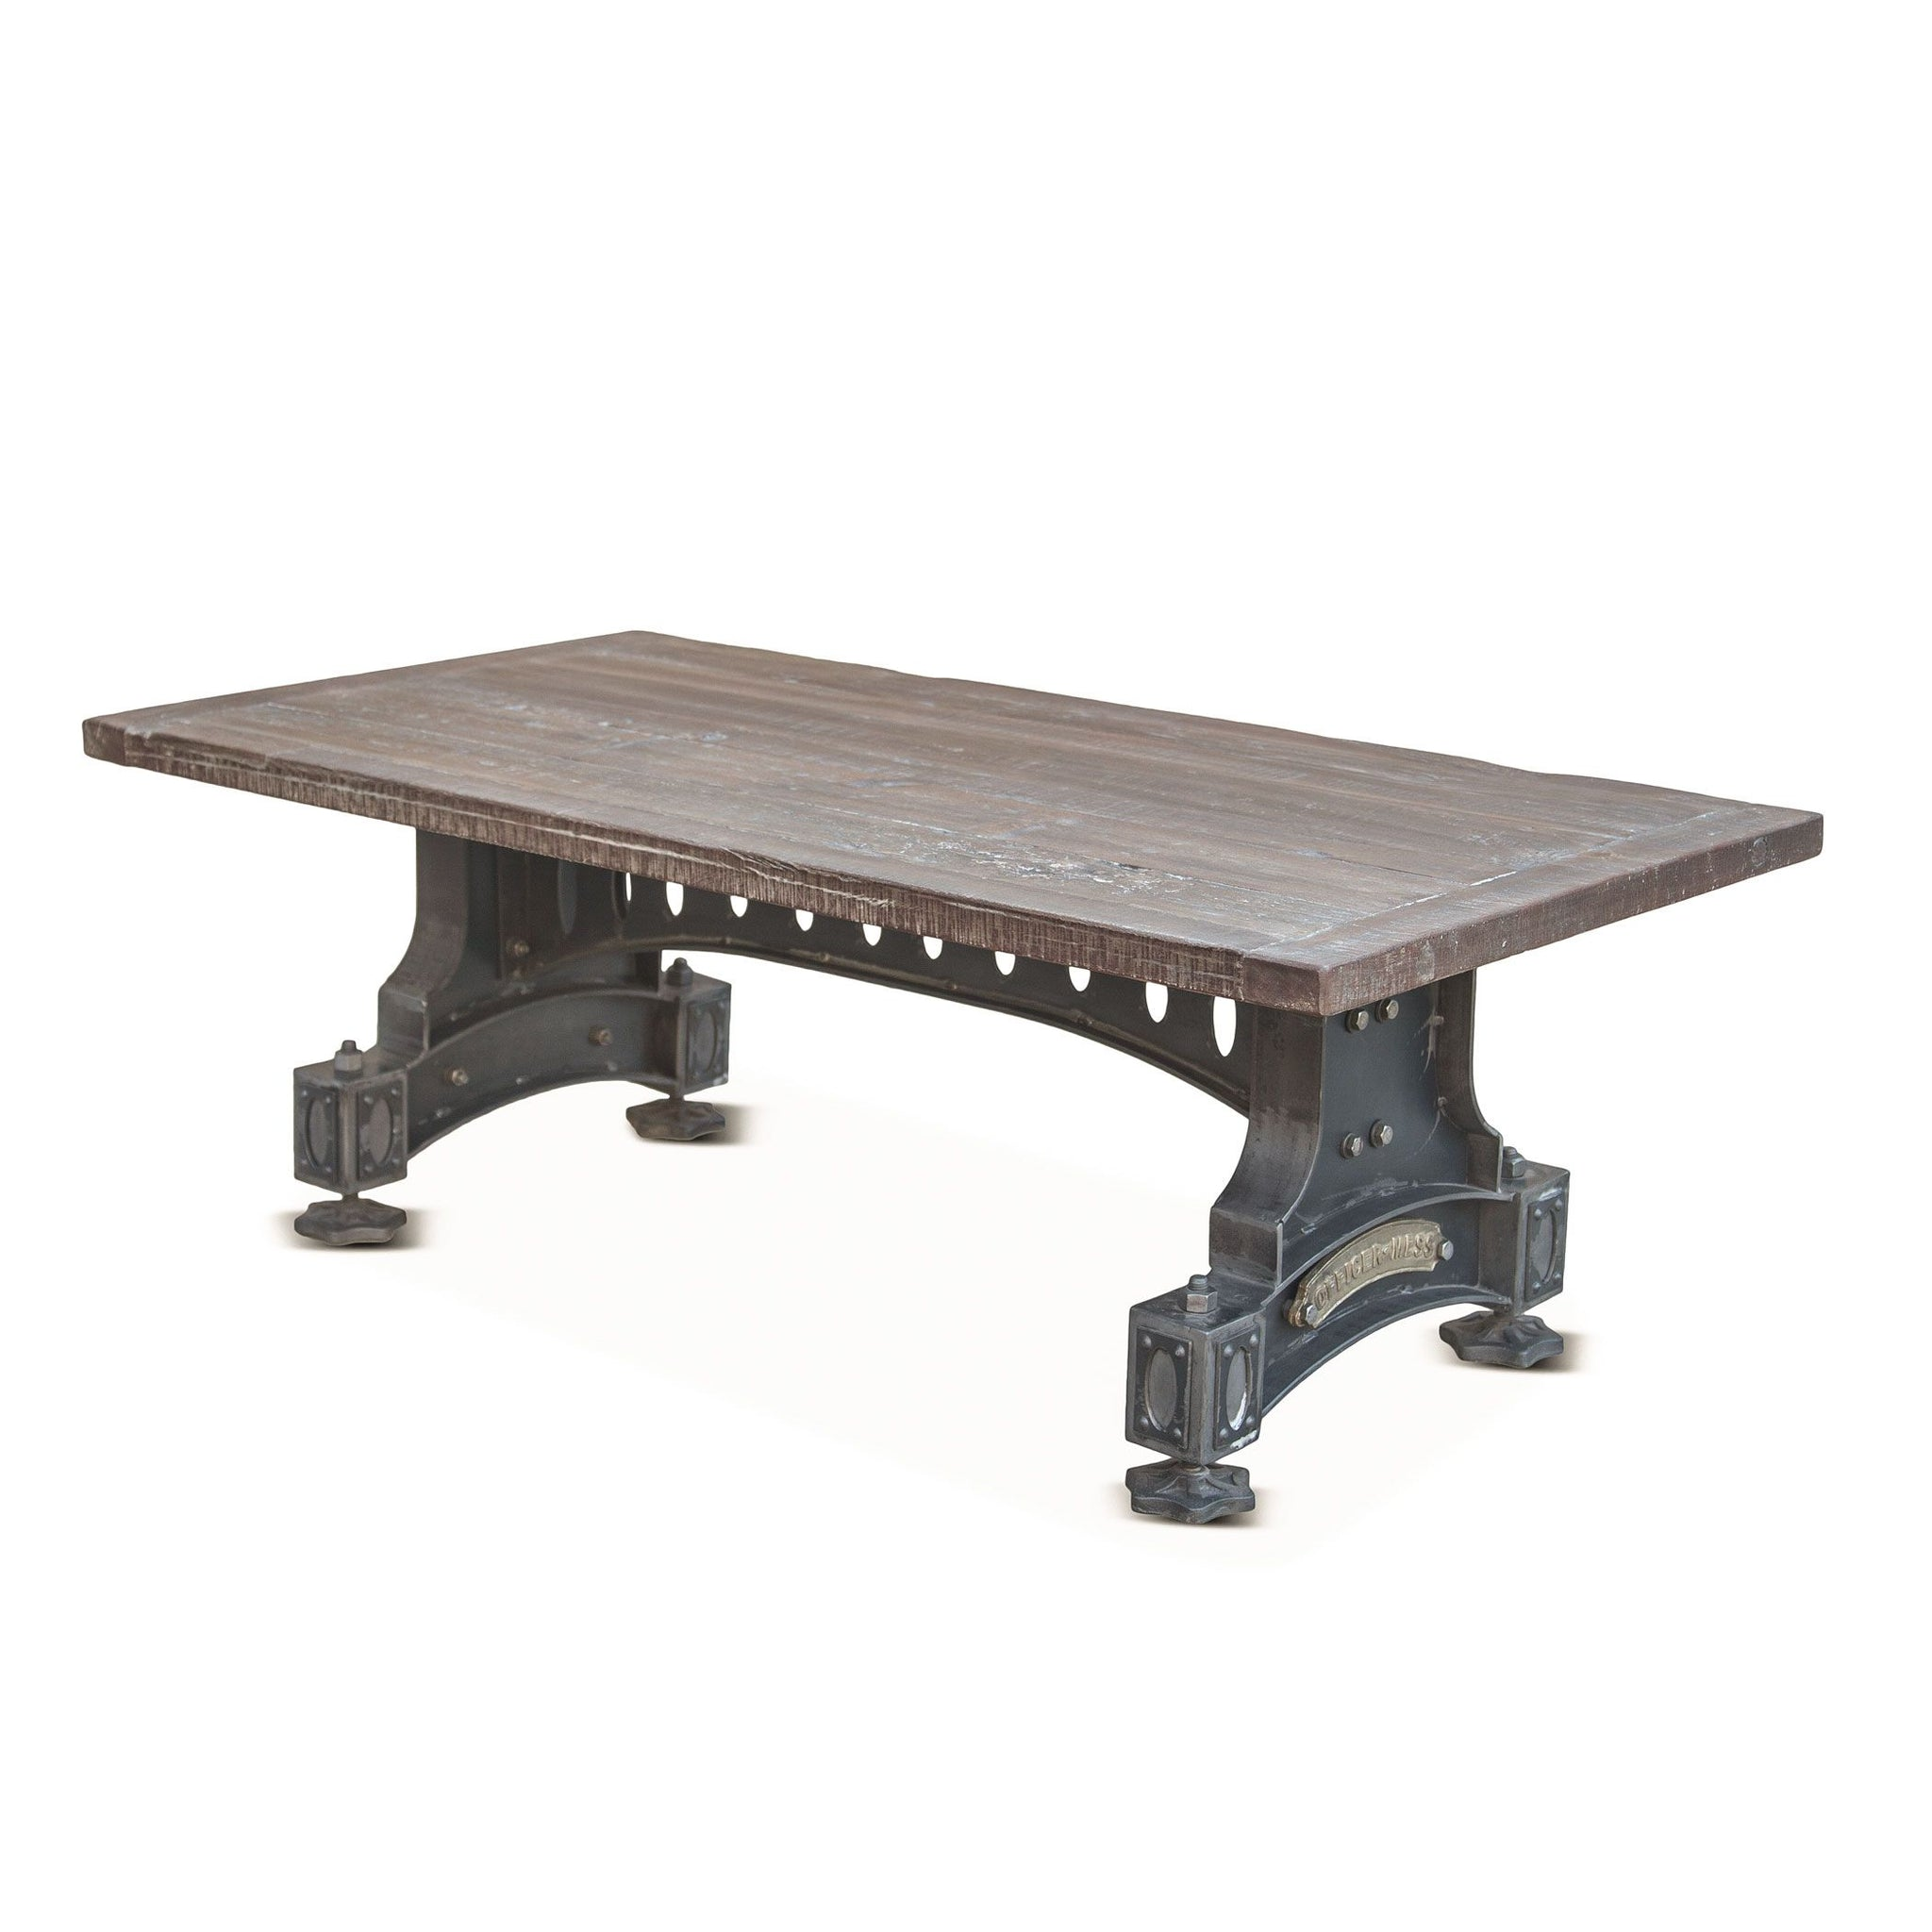 Industrial Teak Reclaimed Wood Coffee Table - Furniture on Main